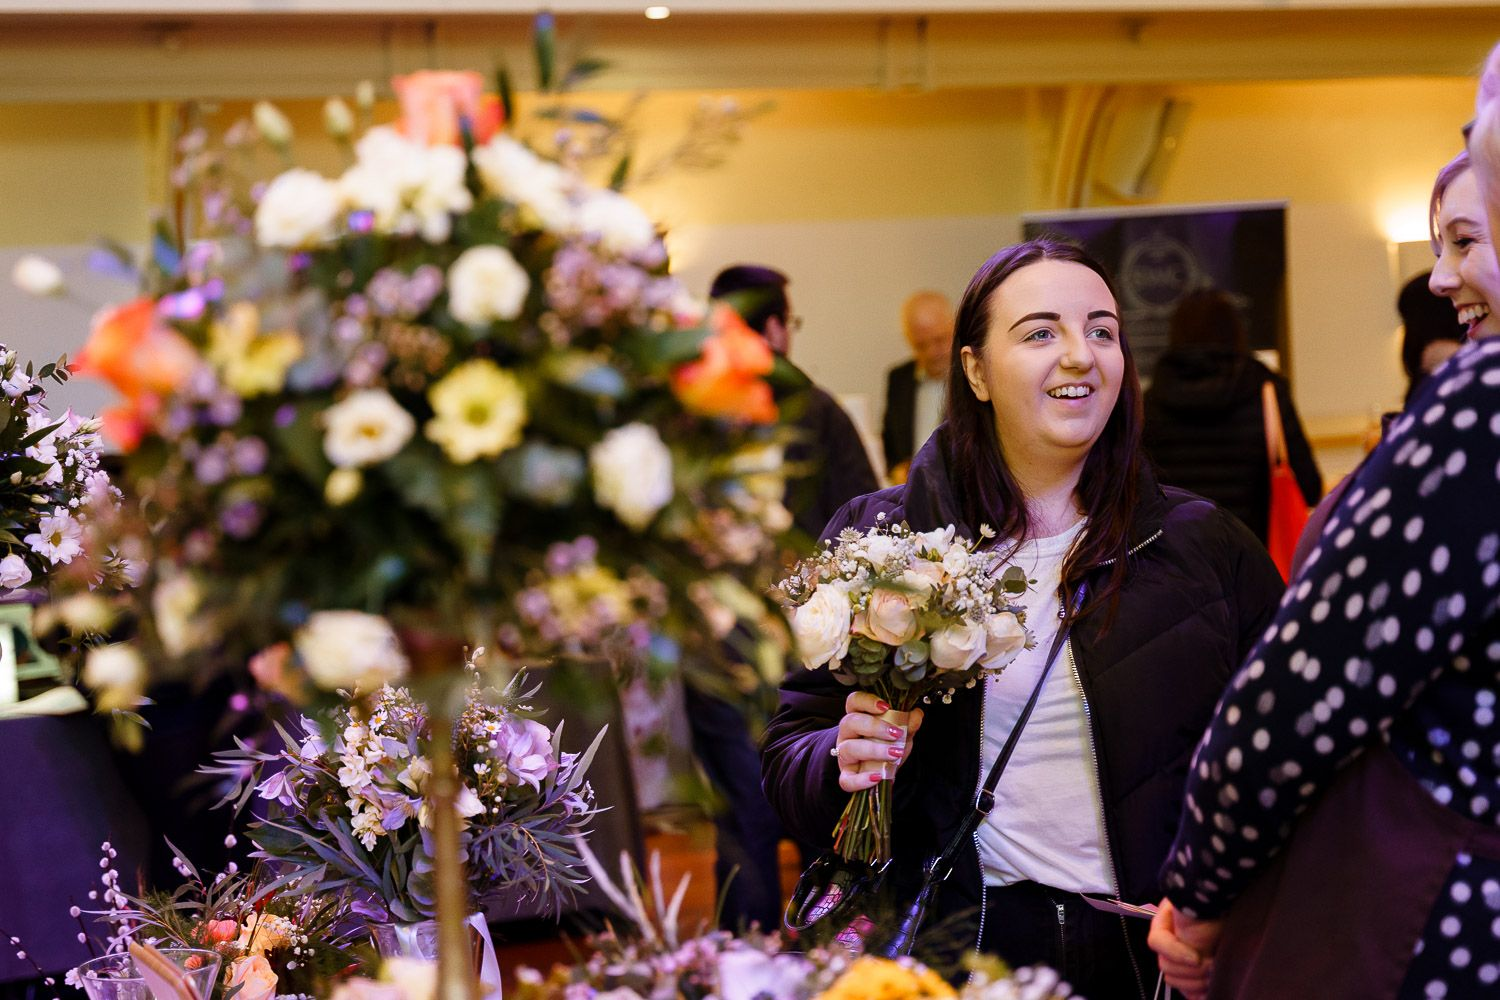 A bride-to-be chats with a florist at a wedding fair in Winchester.